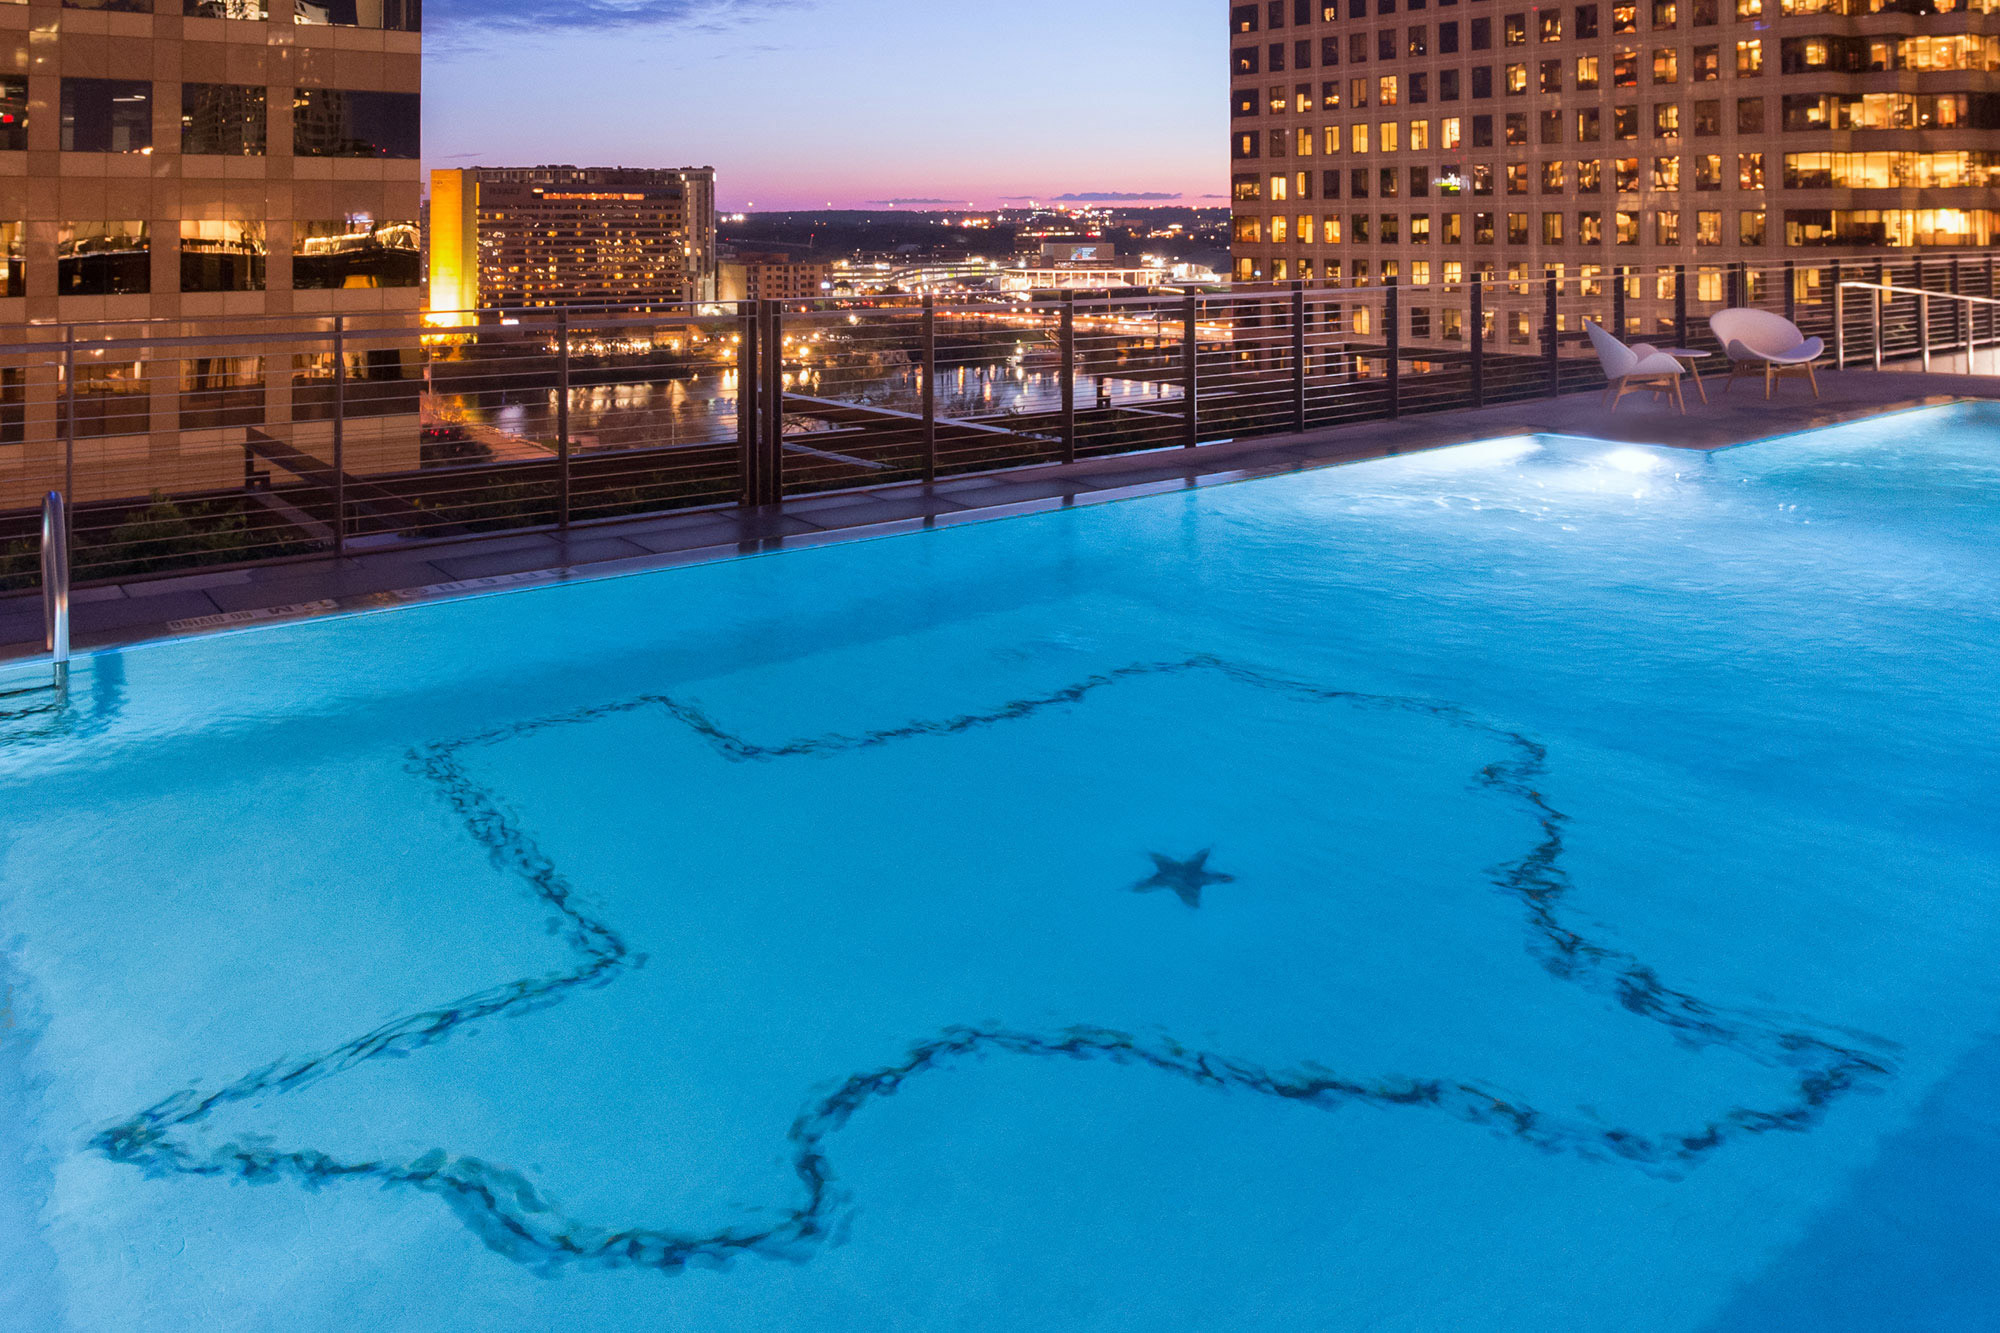 JW Marriott Pool